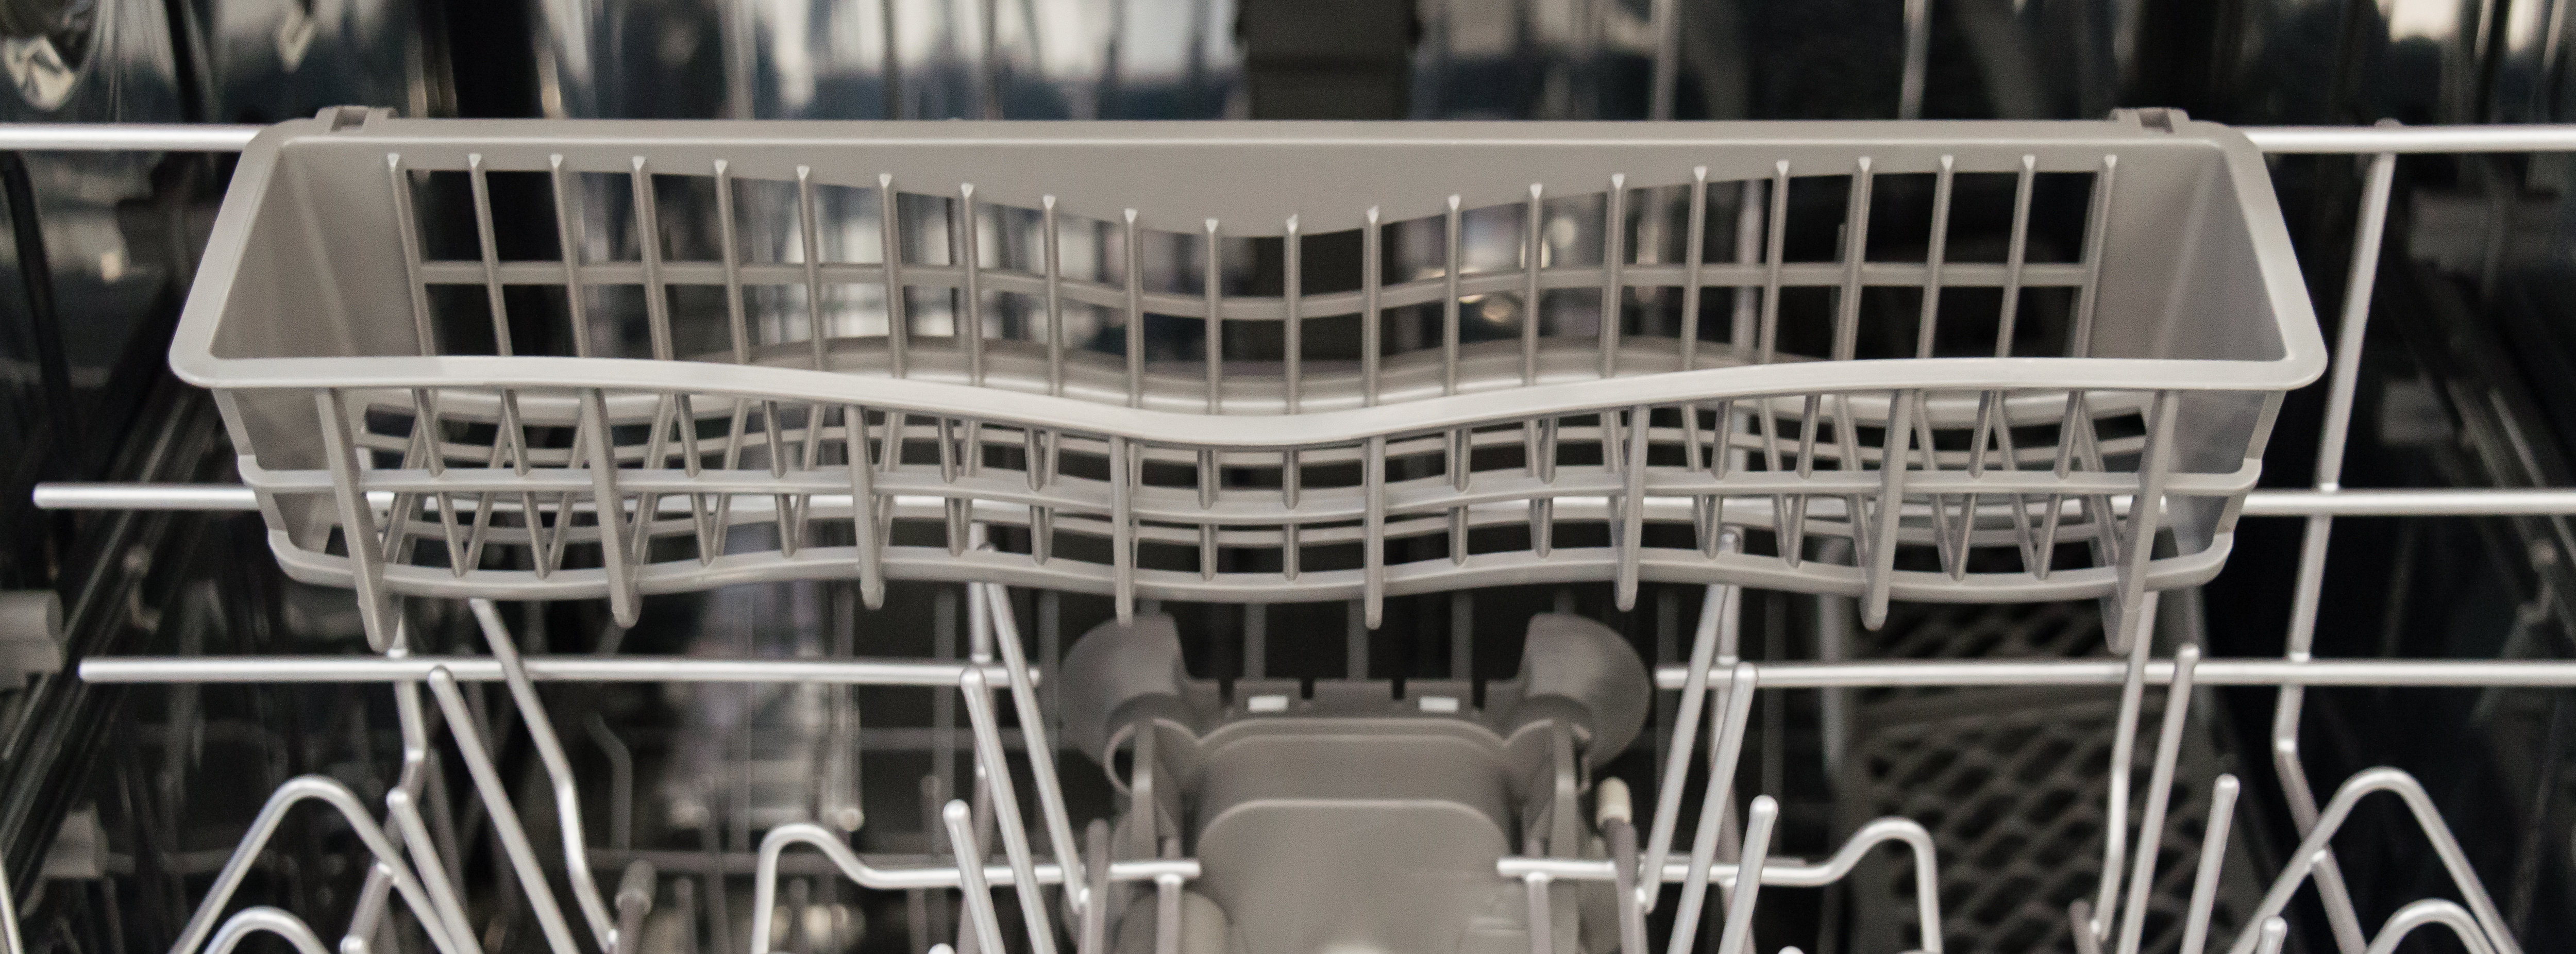 Extra narrow basket found on the upper rack